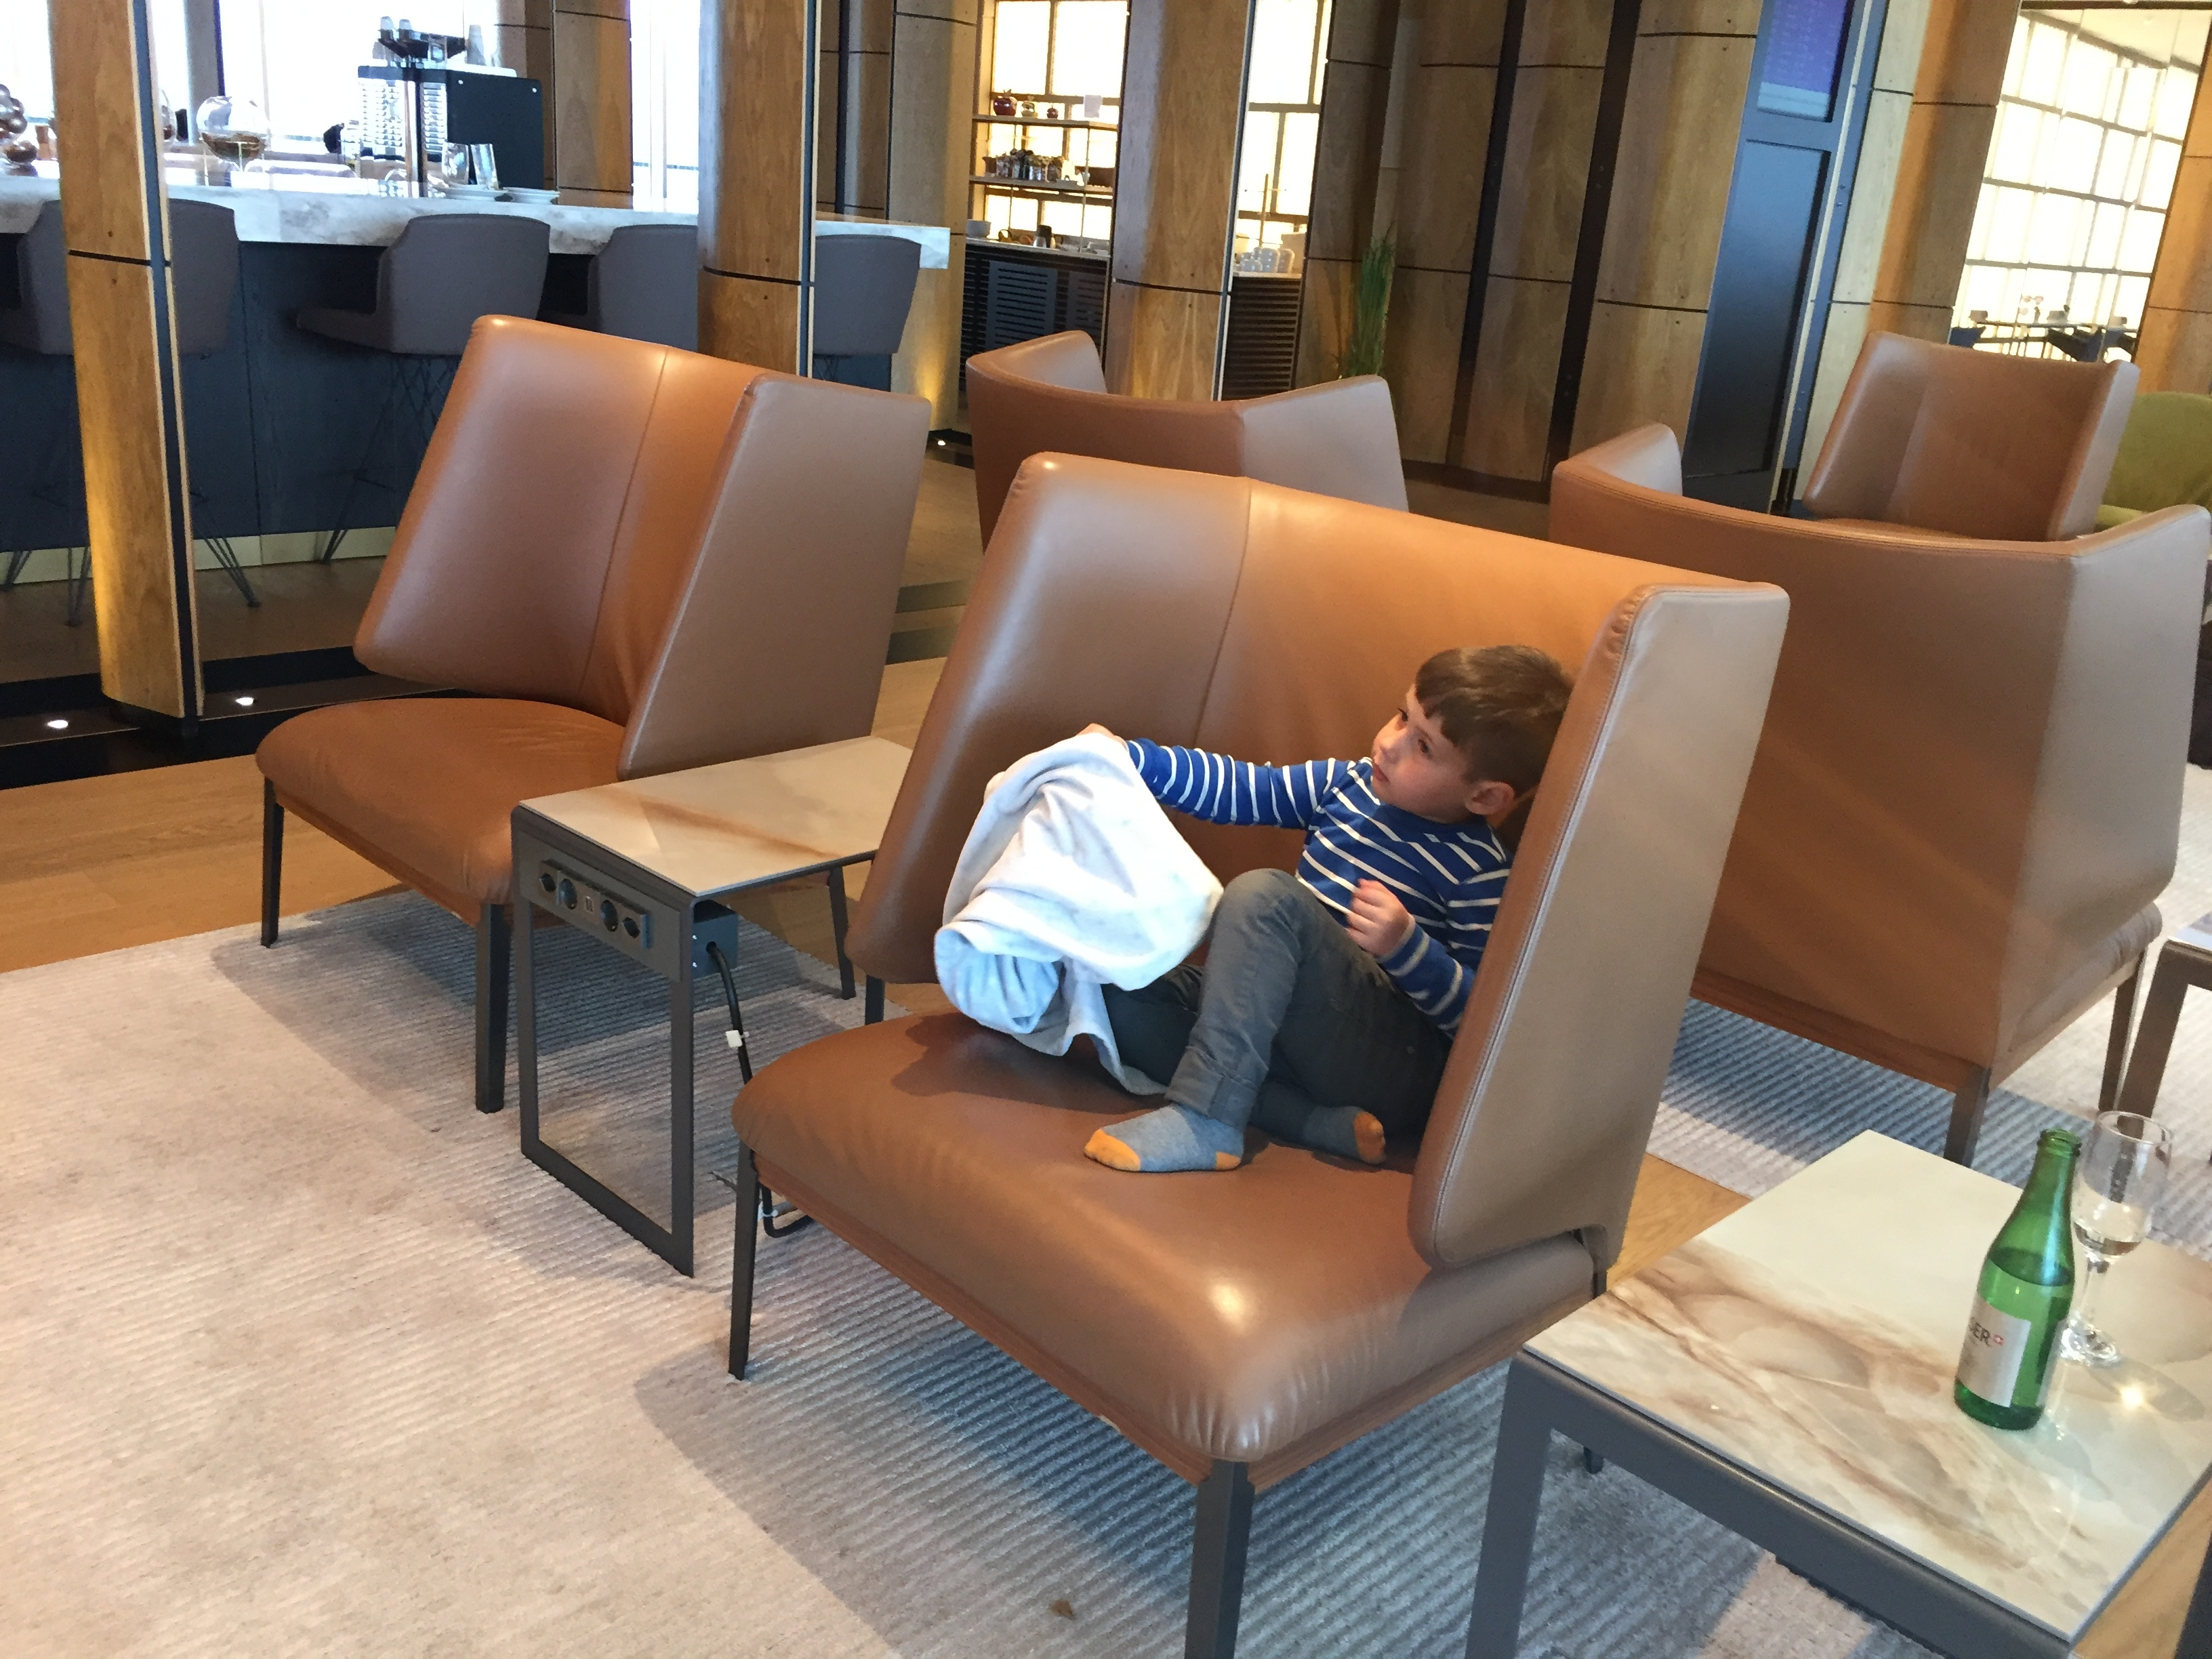 Another sitting lounge area for cartoon fans - Zurich Terminal E